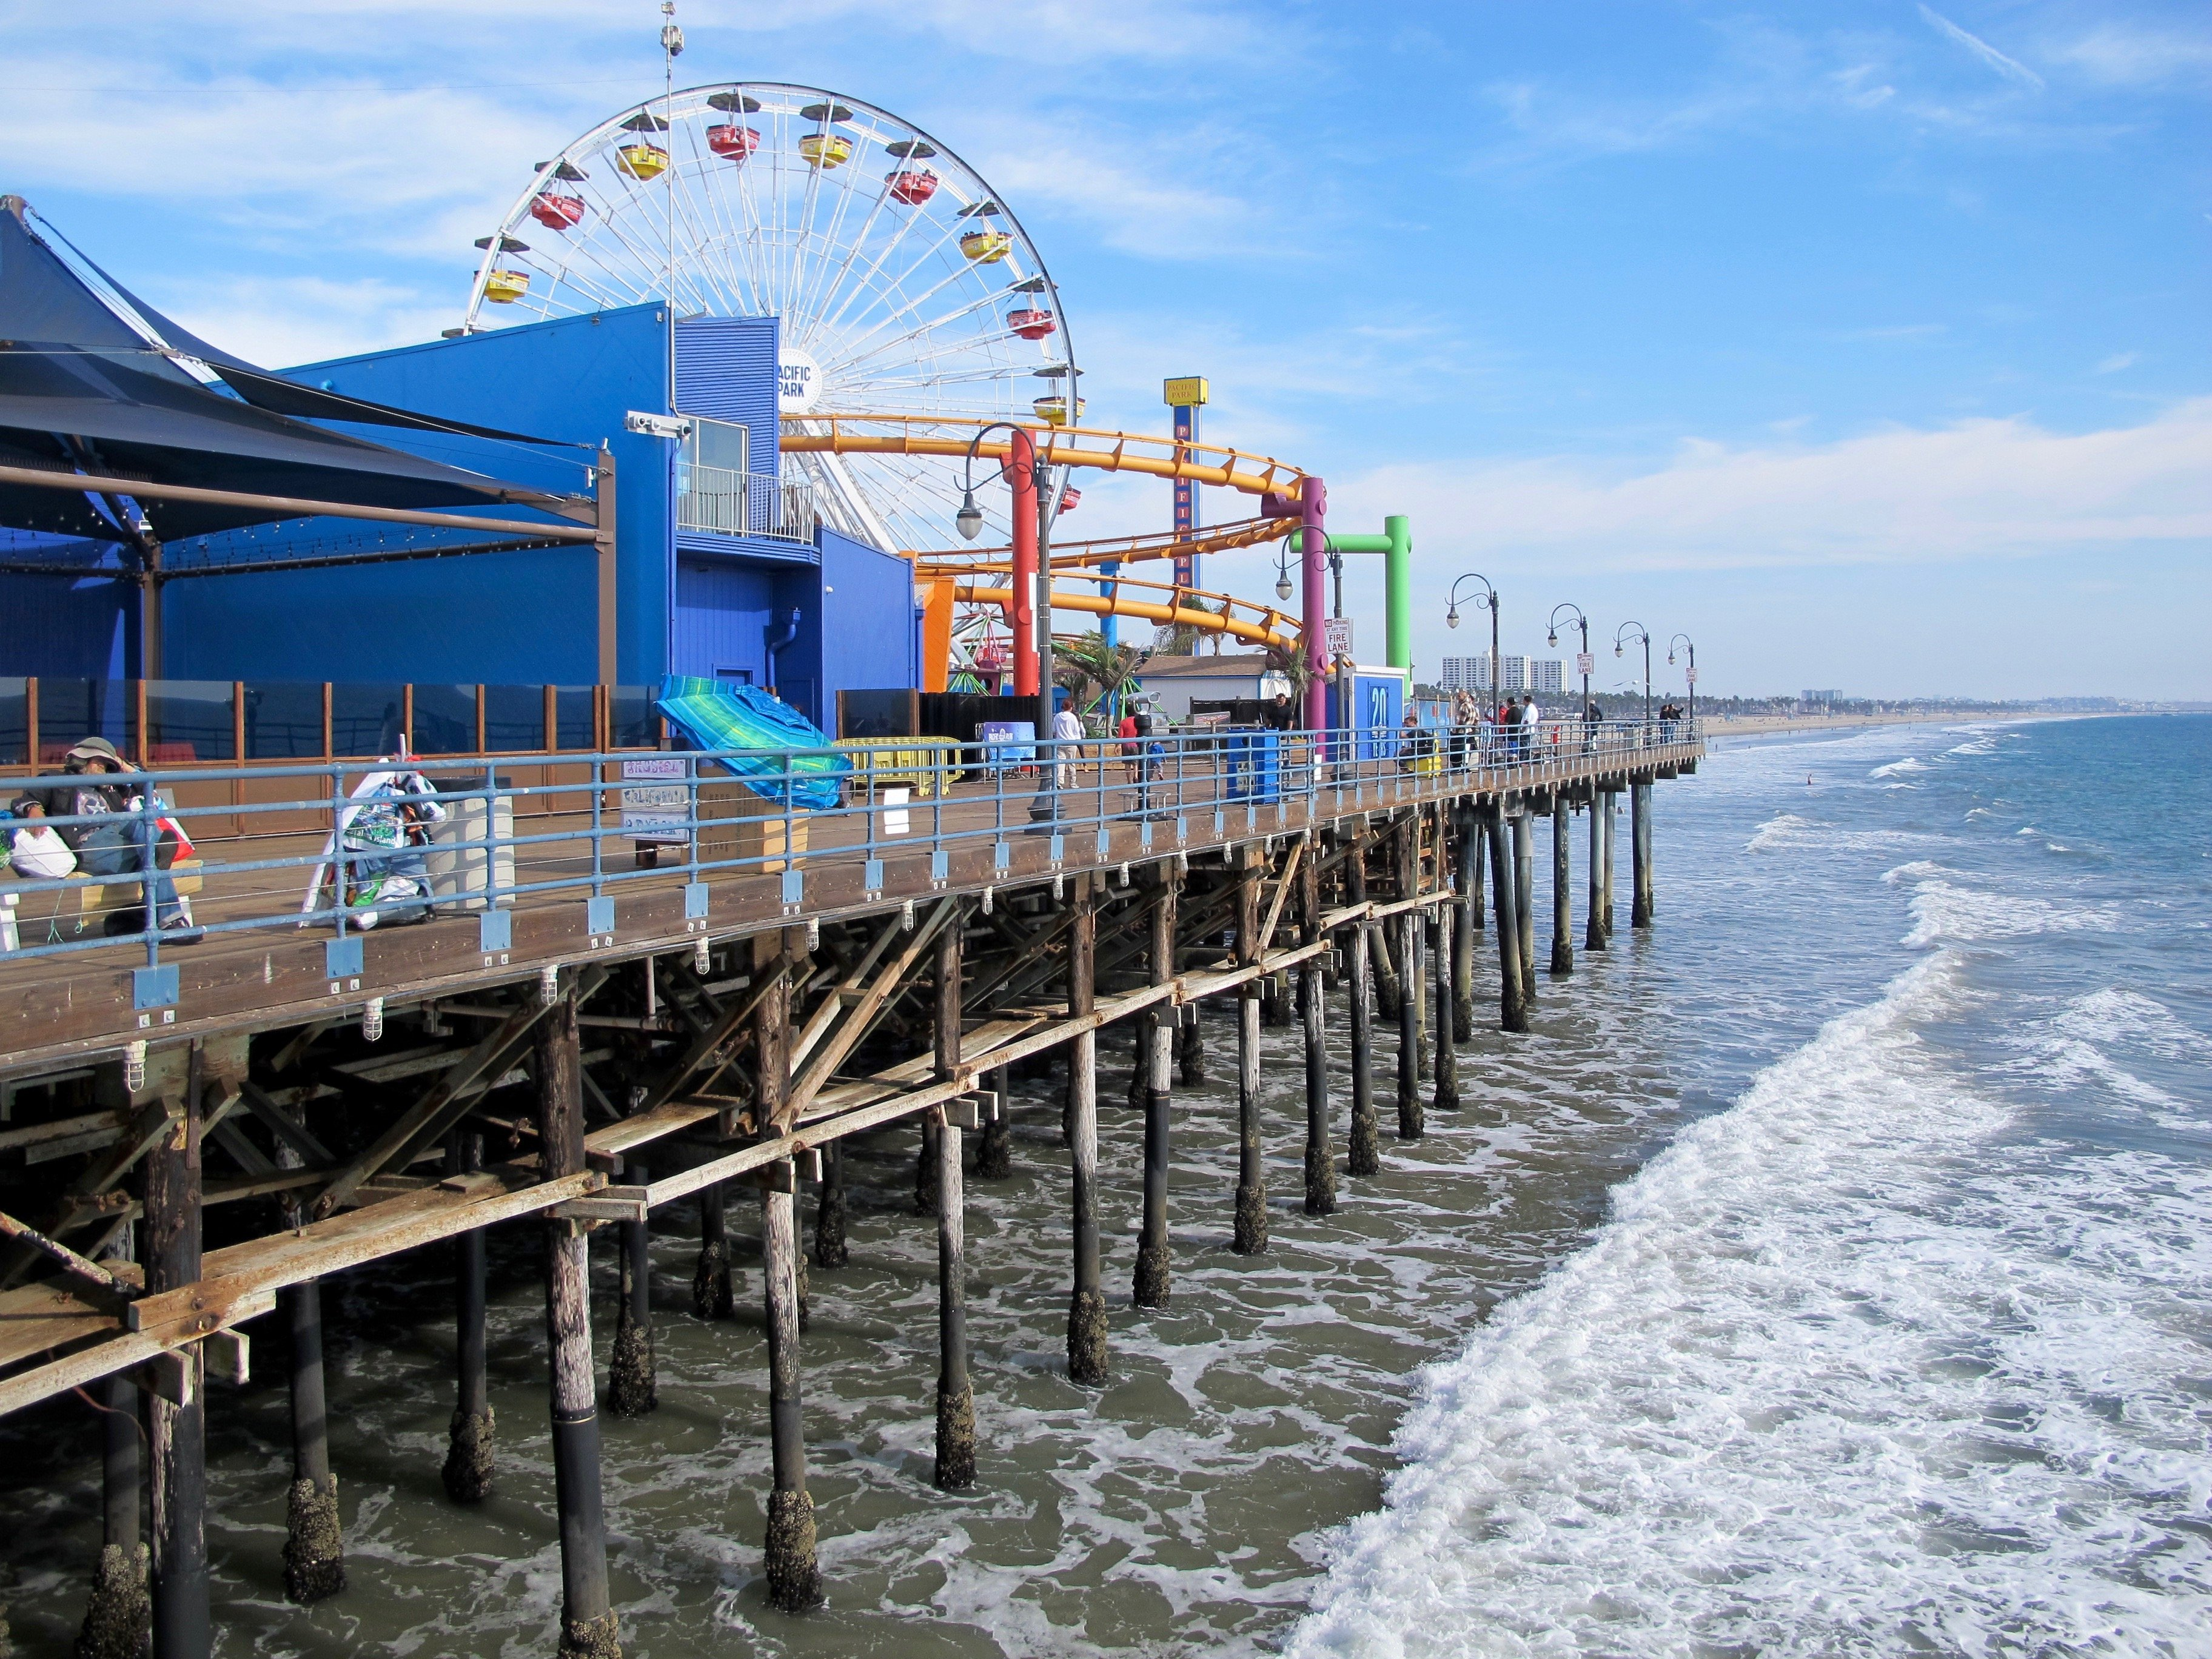 There's lots to see and do in Santa Monica